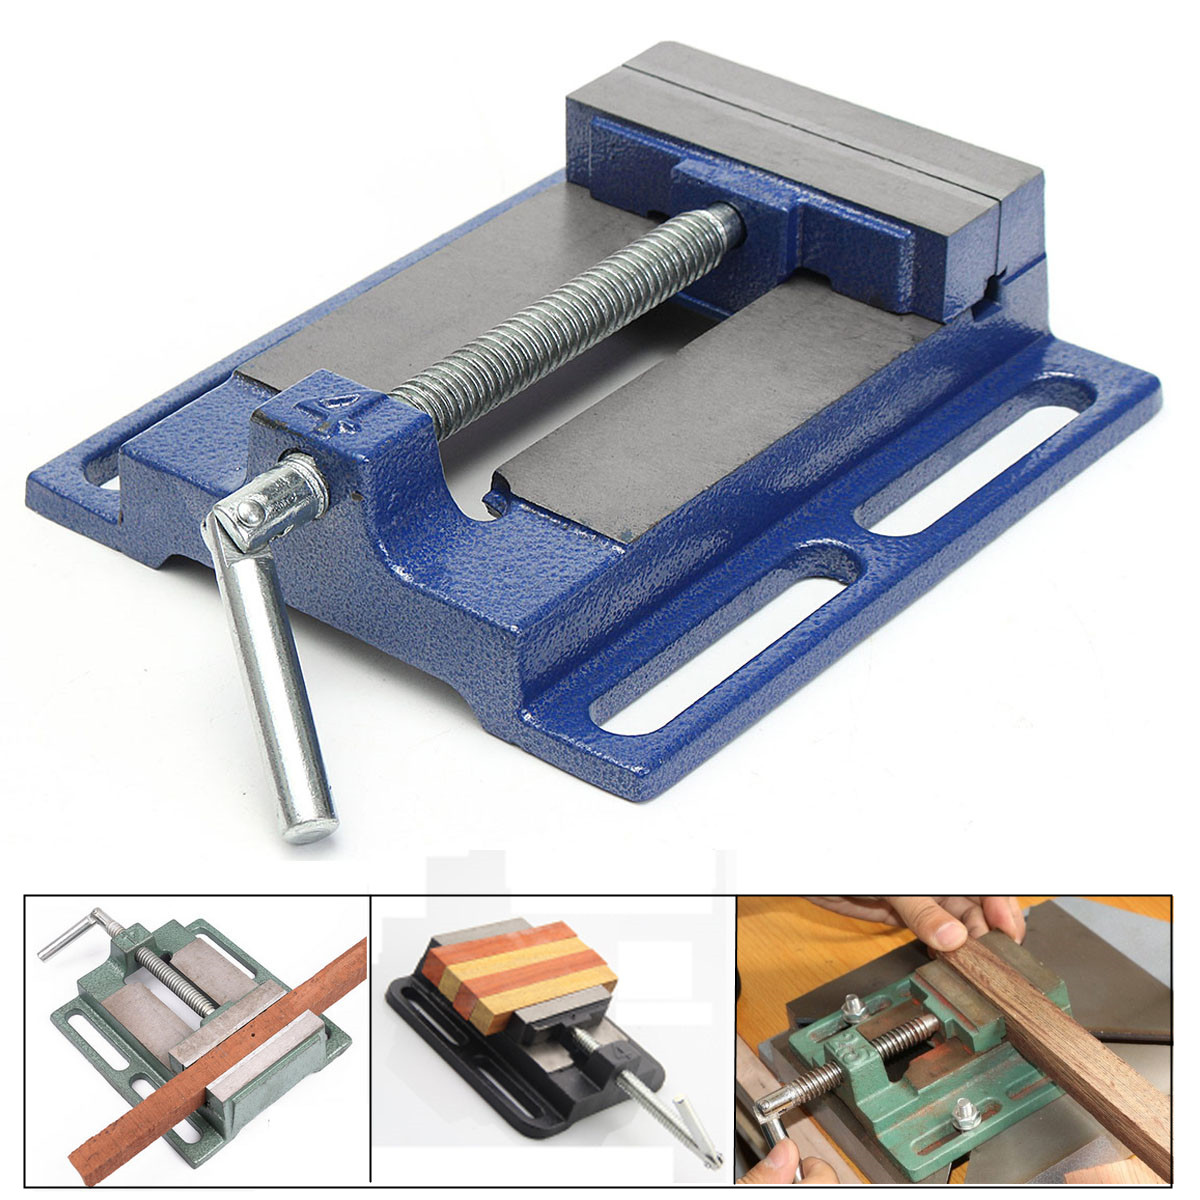 DRILL PRESS VISE Pipe Clamping Holding Cast Iron Heavy Duty 4inch Throat Open